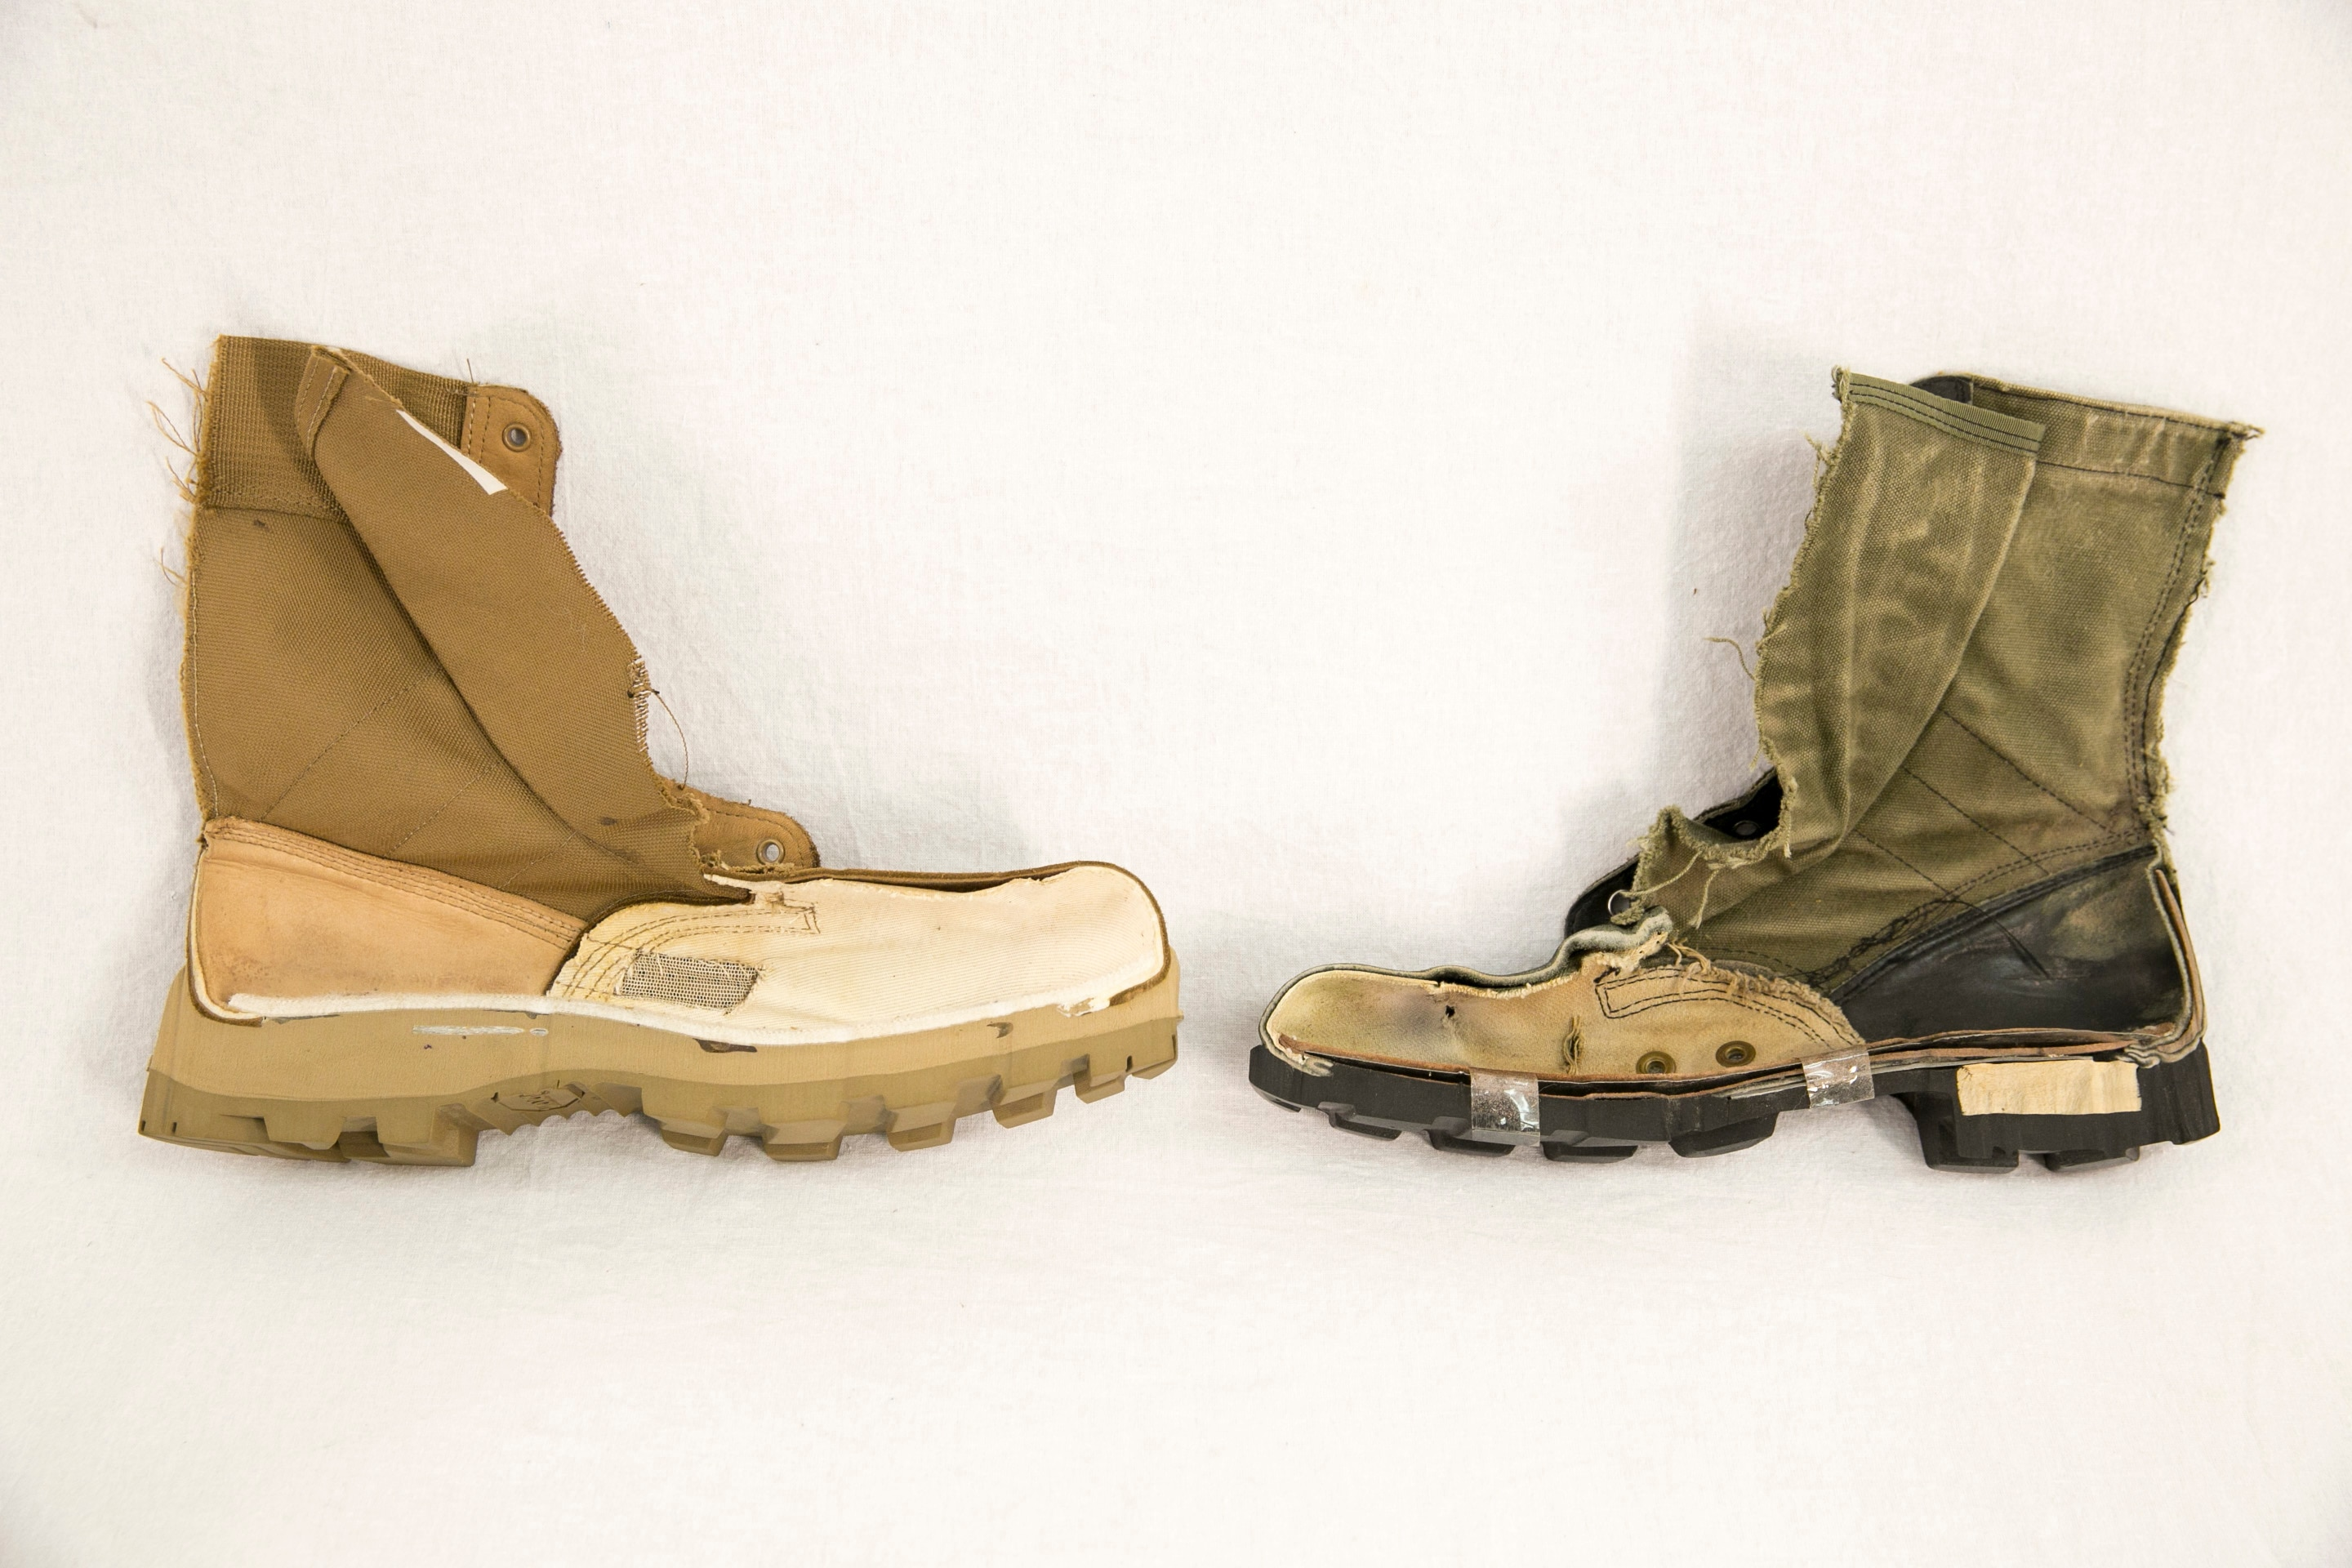 The Army is fielding new jungle boots to two BCTs starting this month